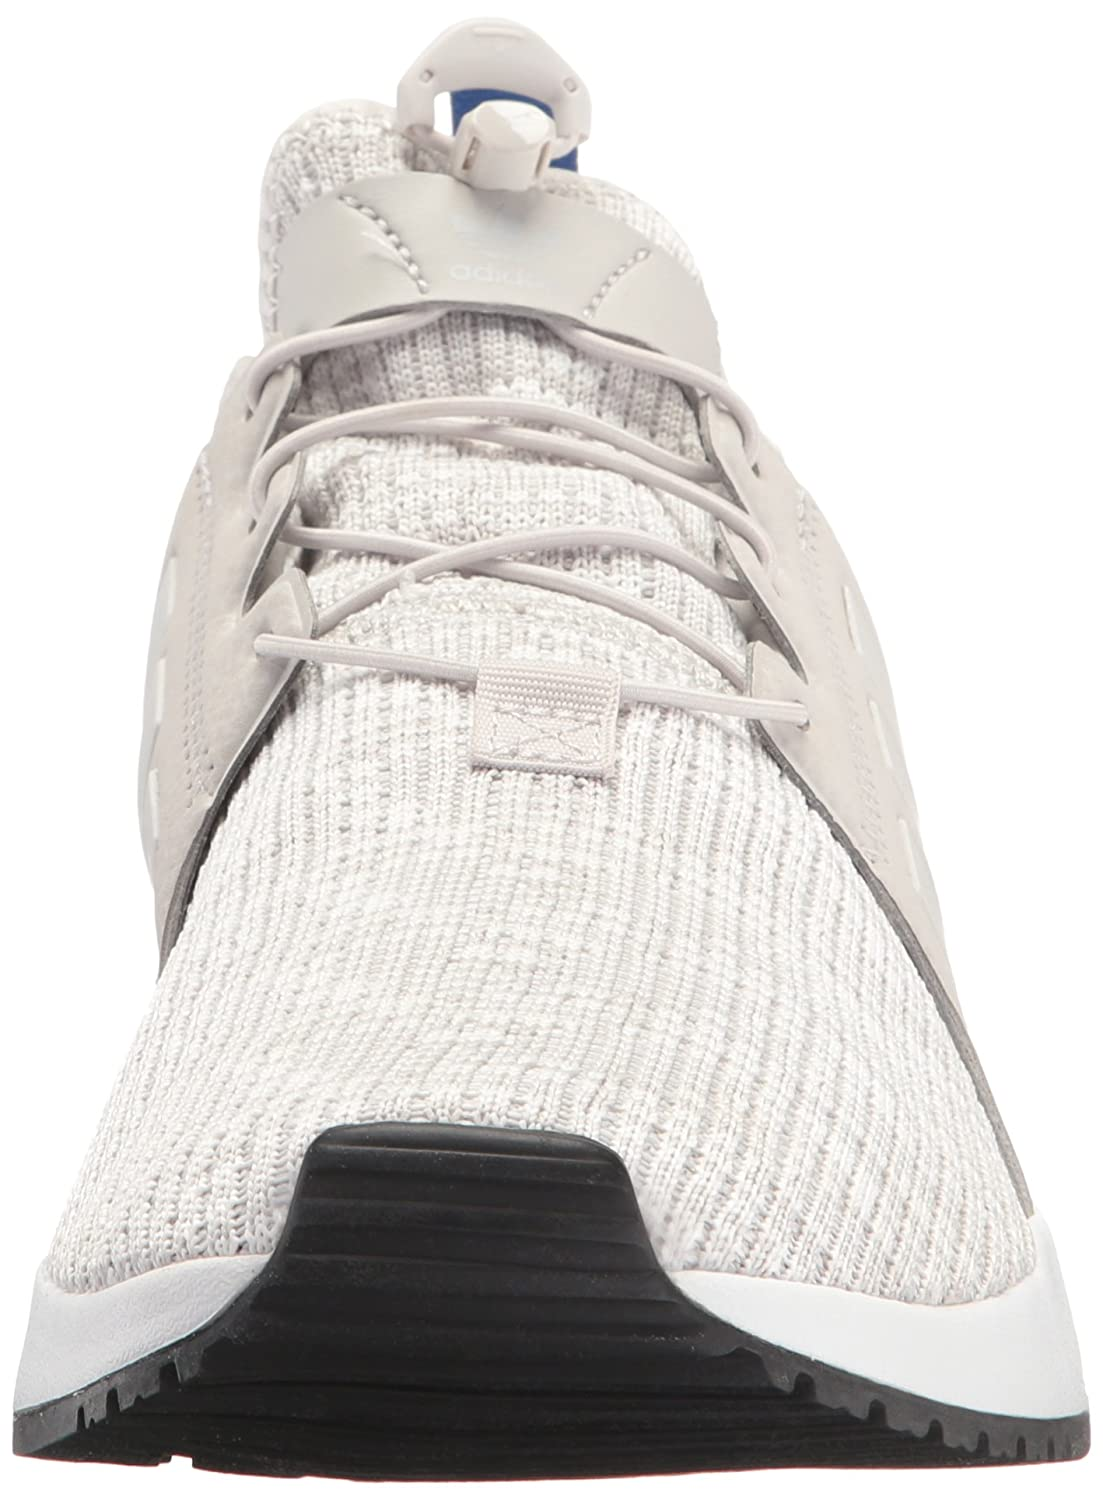 adidas Originals Men's X_PLR Lightweight, Sneakers, Lightweight, X_PLR Comfortable and Stylish with Speed Lacing System for Quick On-Off Wear B01MSYVZU8 Running 10a664